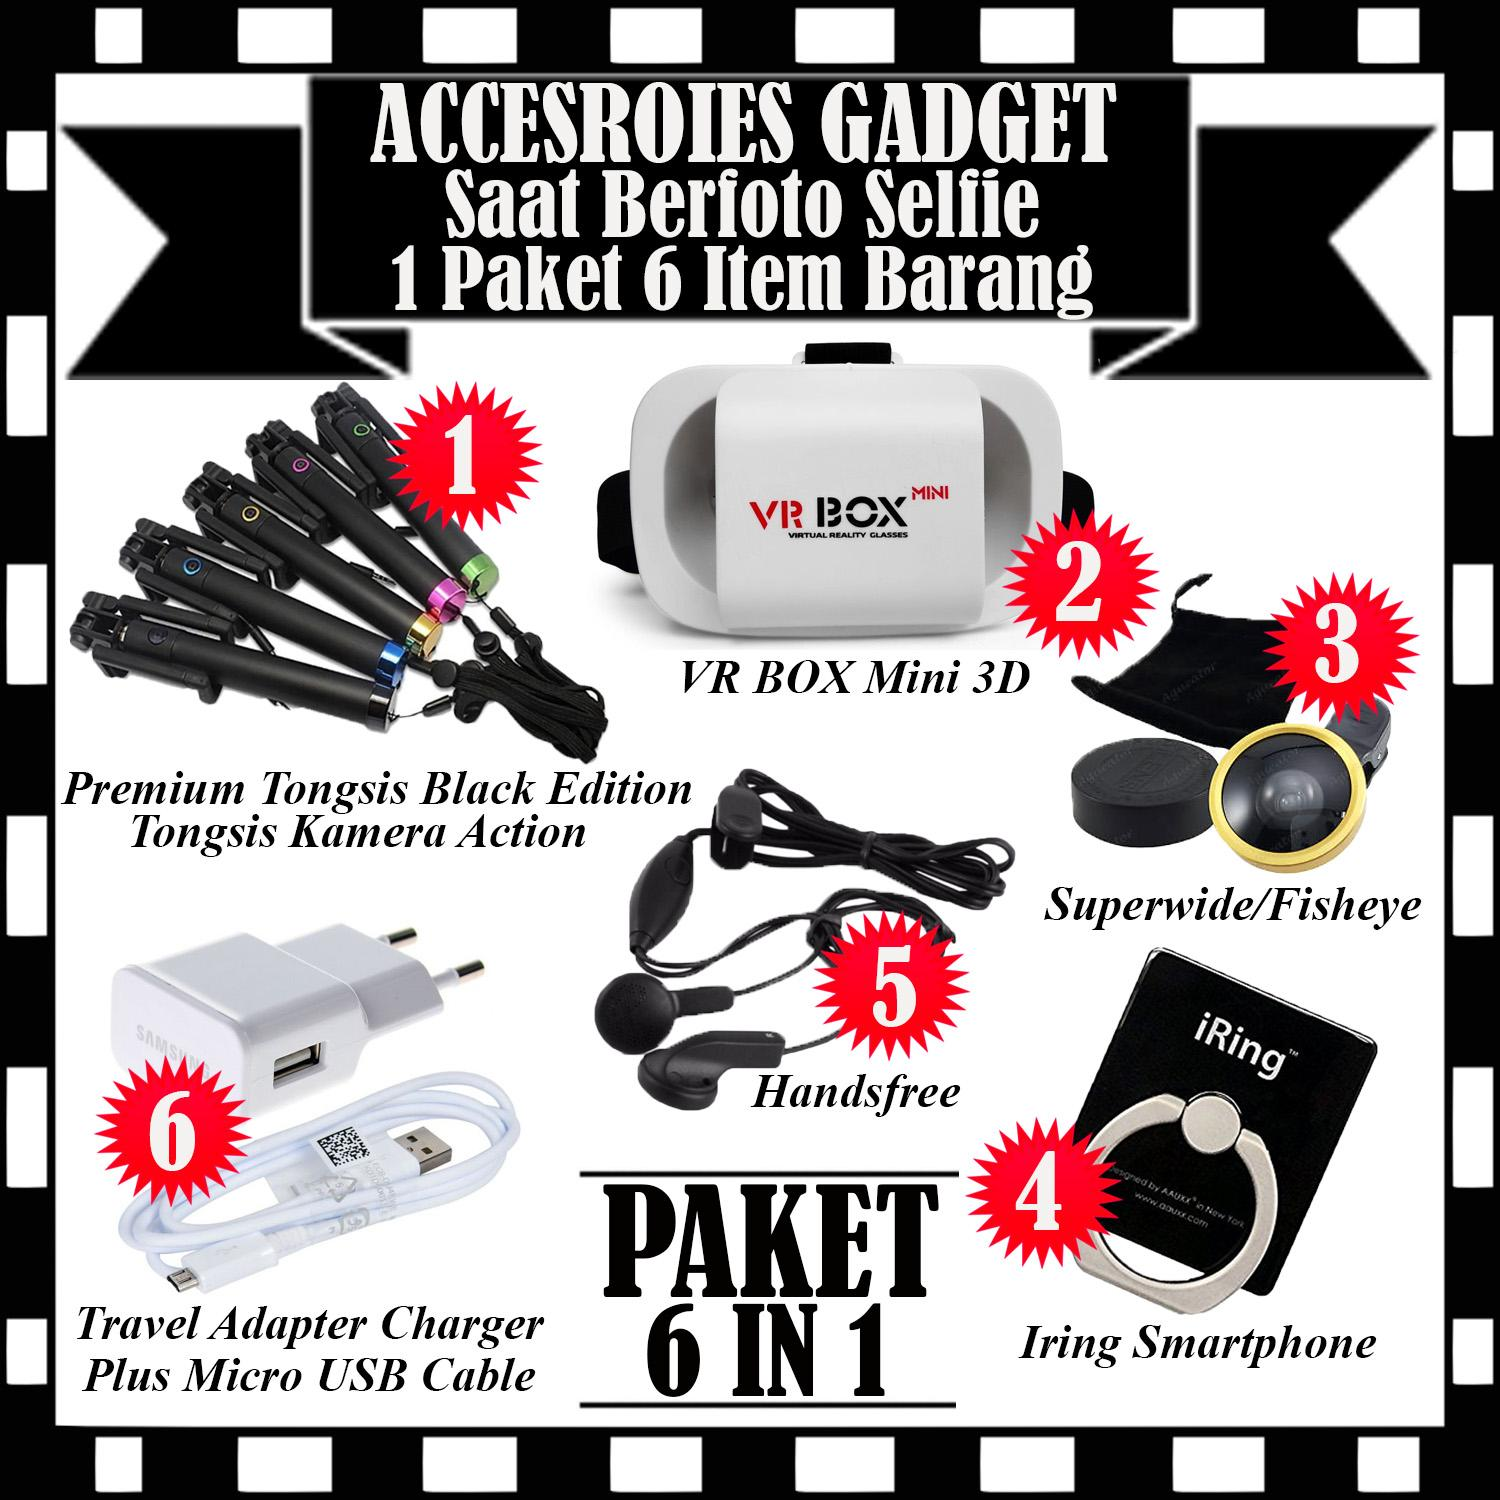 Paket Accesories Gadget Berfoto Selfie - Premium Tongsis Black Edition Tongsis Kamera Action + VR Box Mini 3D Virtual Reality Glasses Cardboard Movie & Game + Superwide/Fisheye + Iring Smartphone + Handsfree & Travel Adapter Charger Plus Micro USB Cable